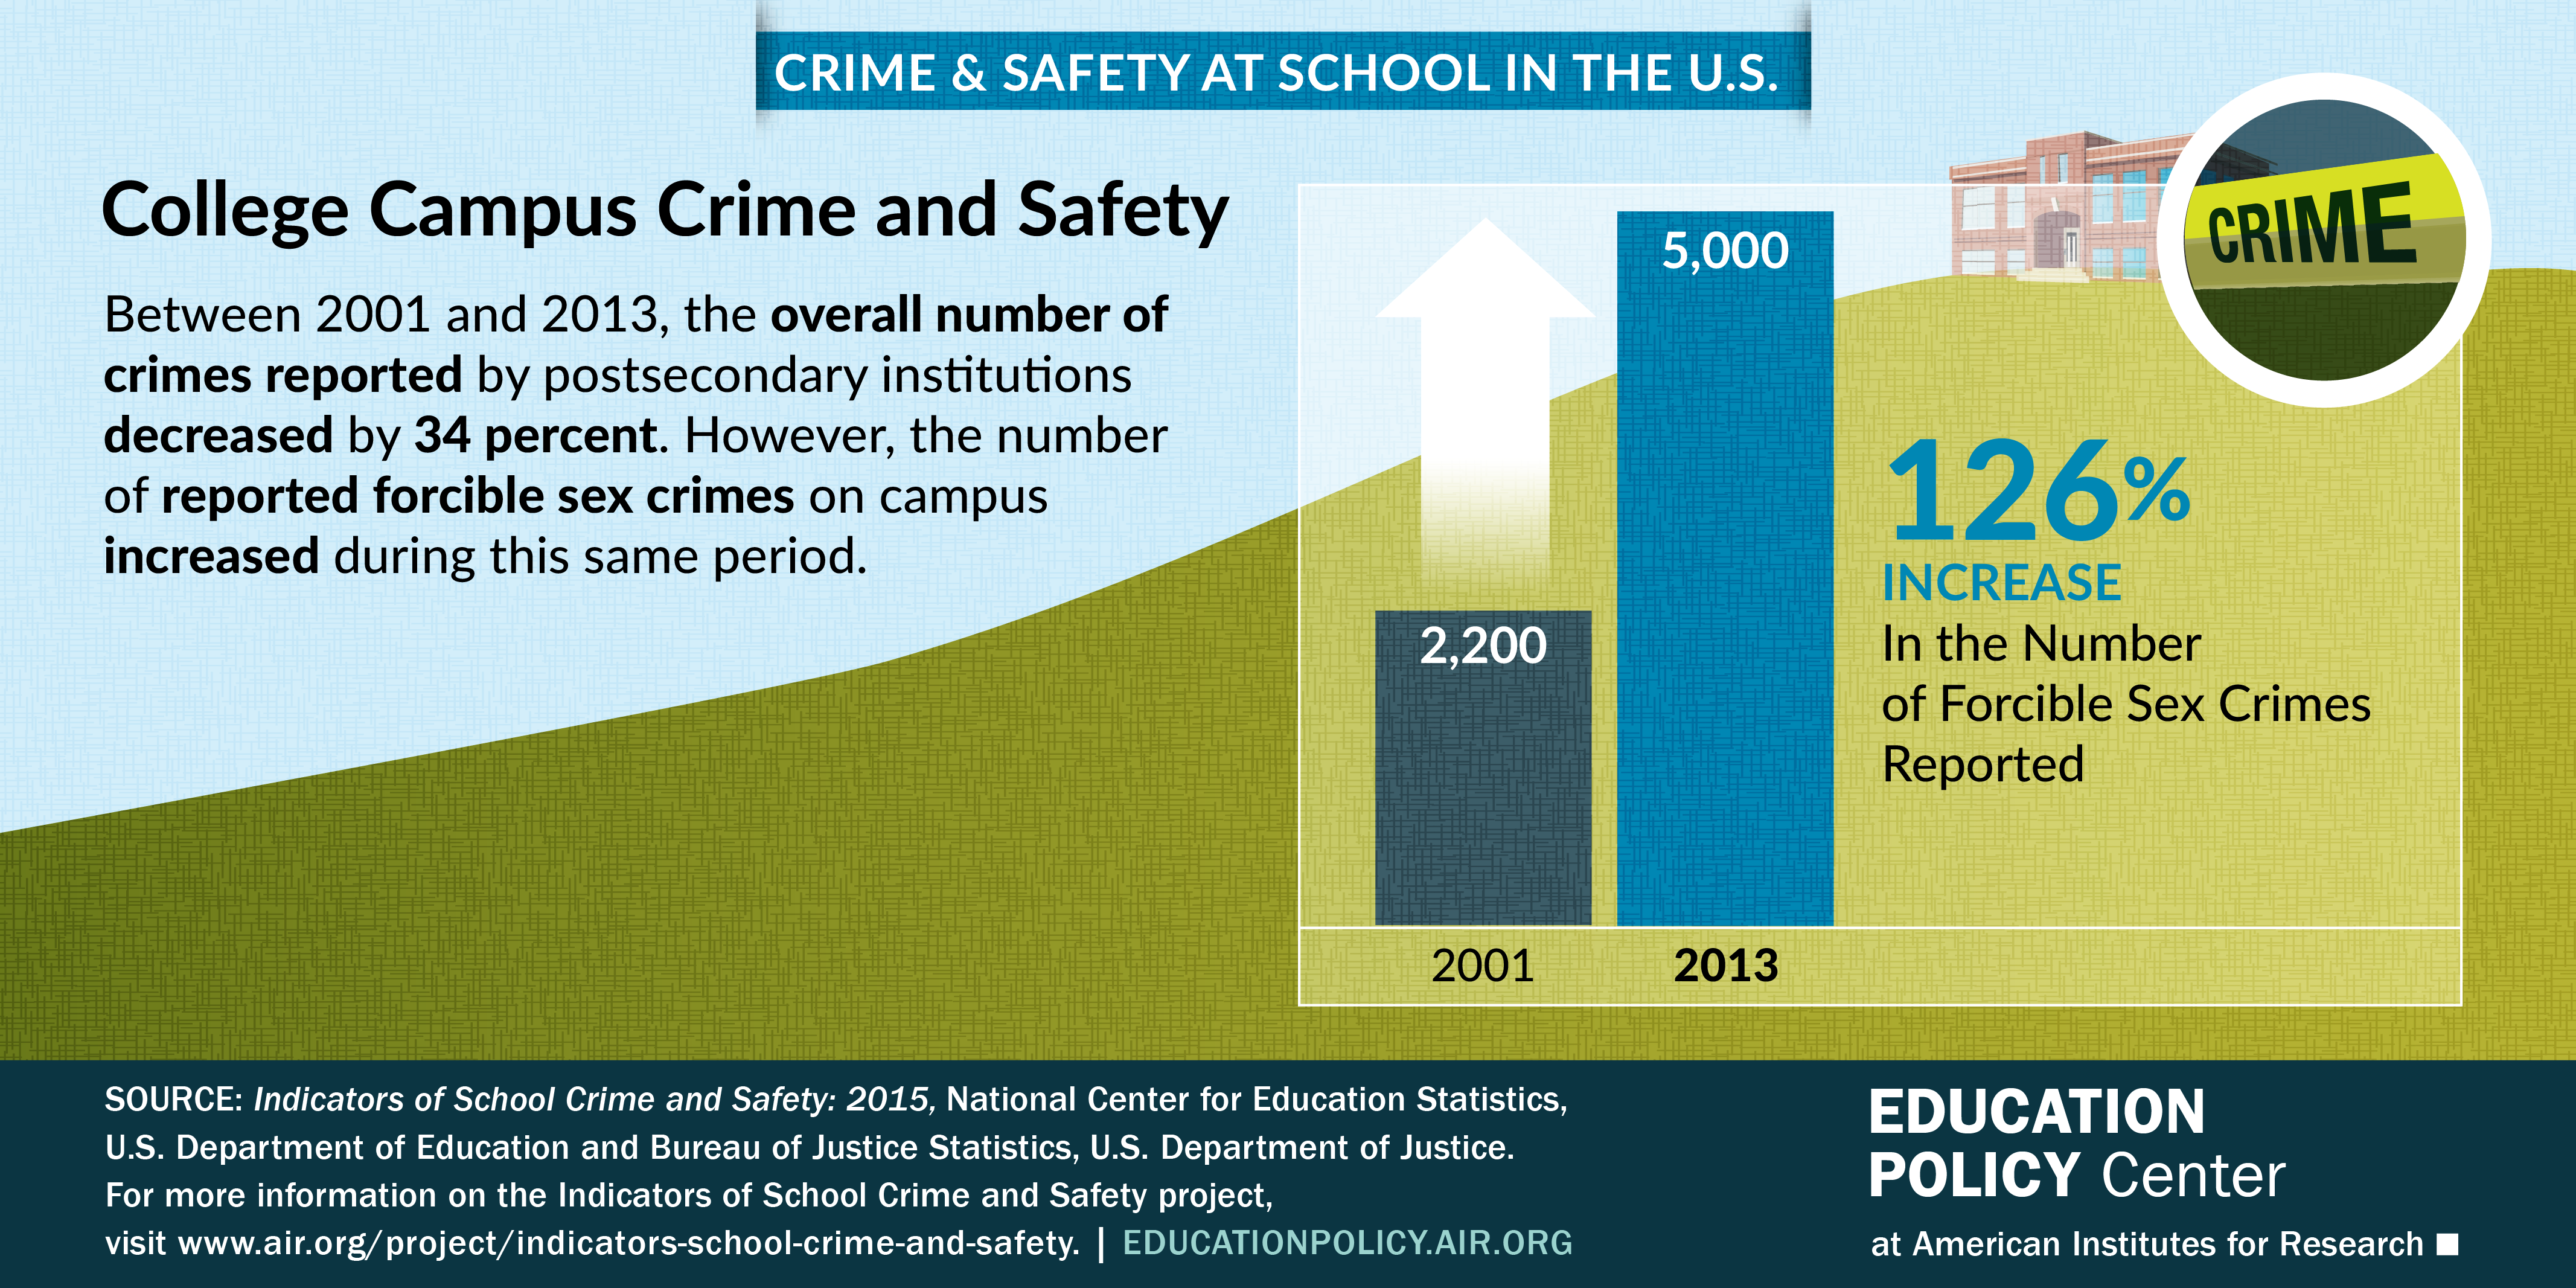 Infographic shows the overall number of crimes reported by postsecondary institutions decreased by 34% between 2001 and 2013. However, the number of reported forcible sex crimes on campus increased during this same period.